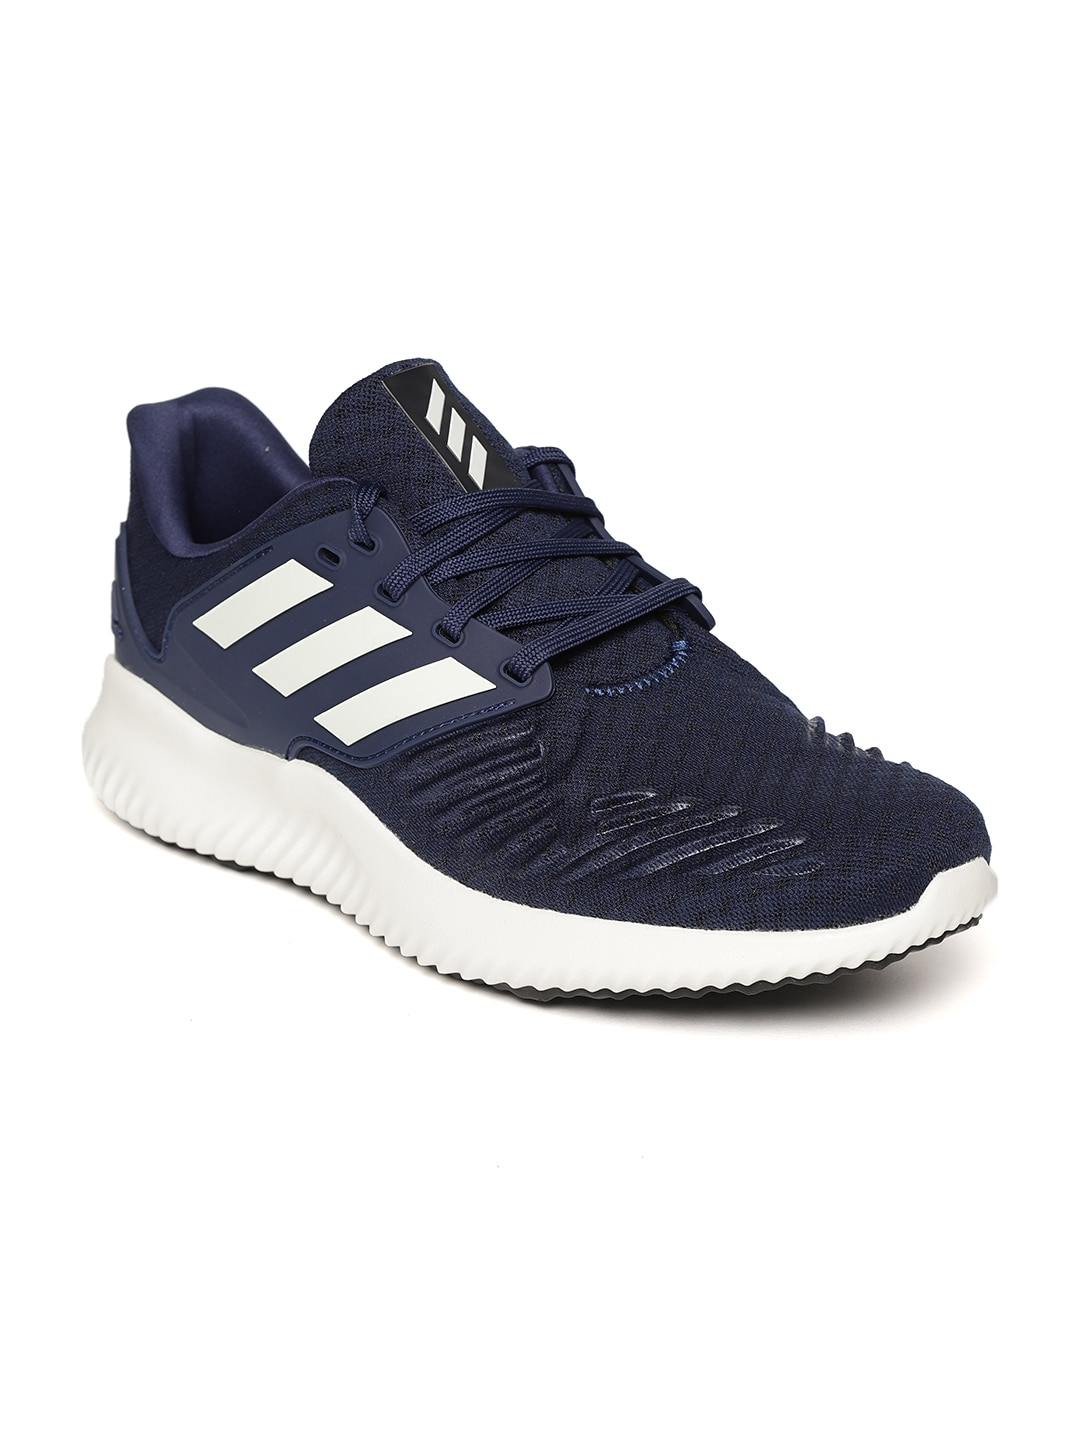 580131f598507 Adidas Sports Shoes - Buy Addidas Sports Shoes Online